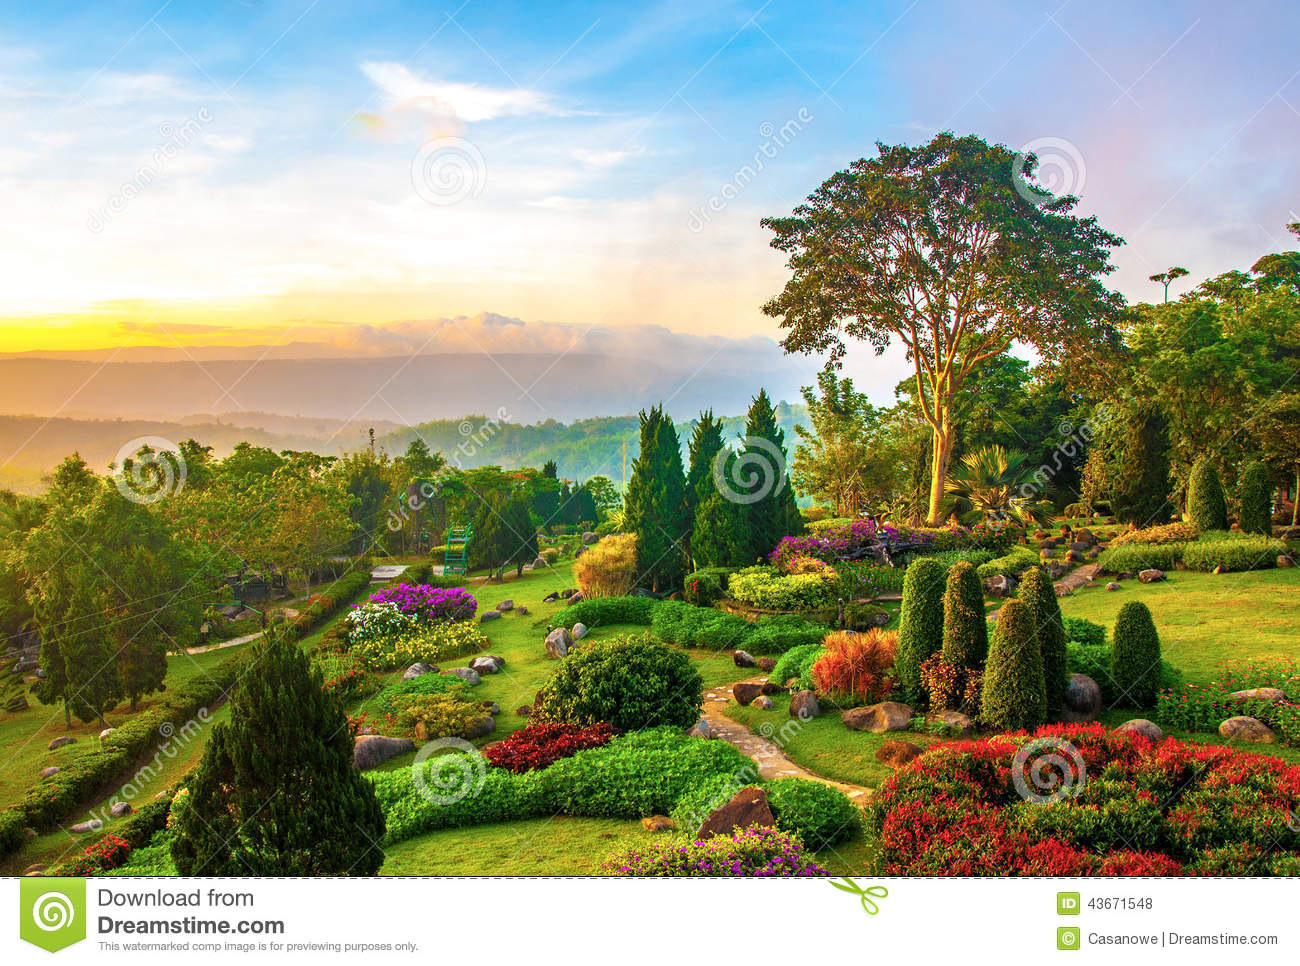 garden design with beautiful garden of colorful flowers on hill stock photo image with landscaping stones